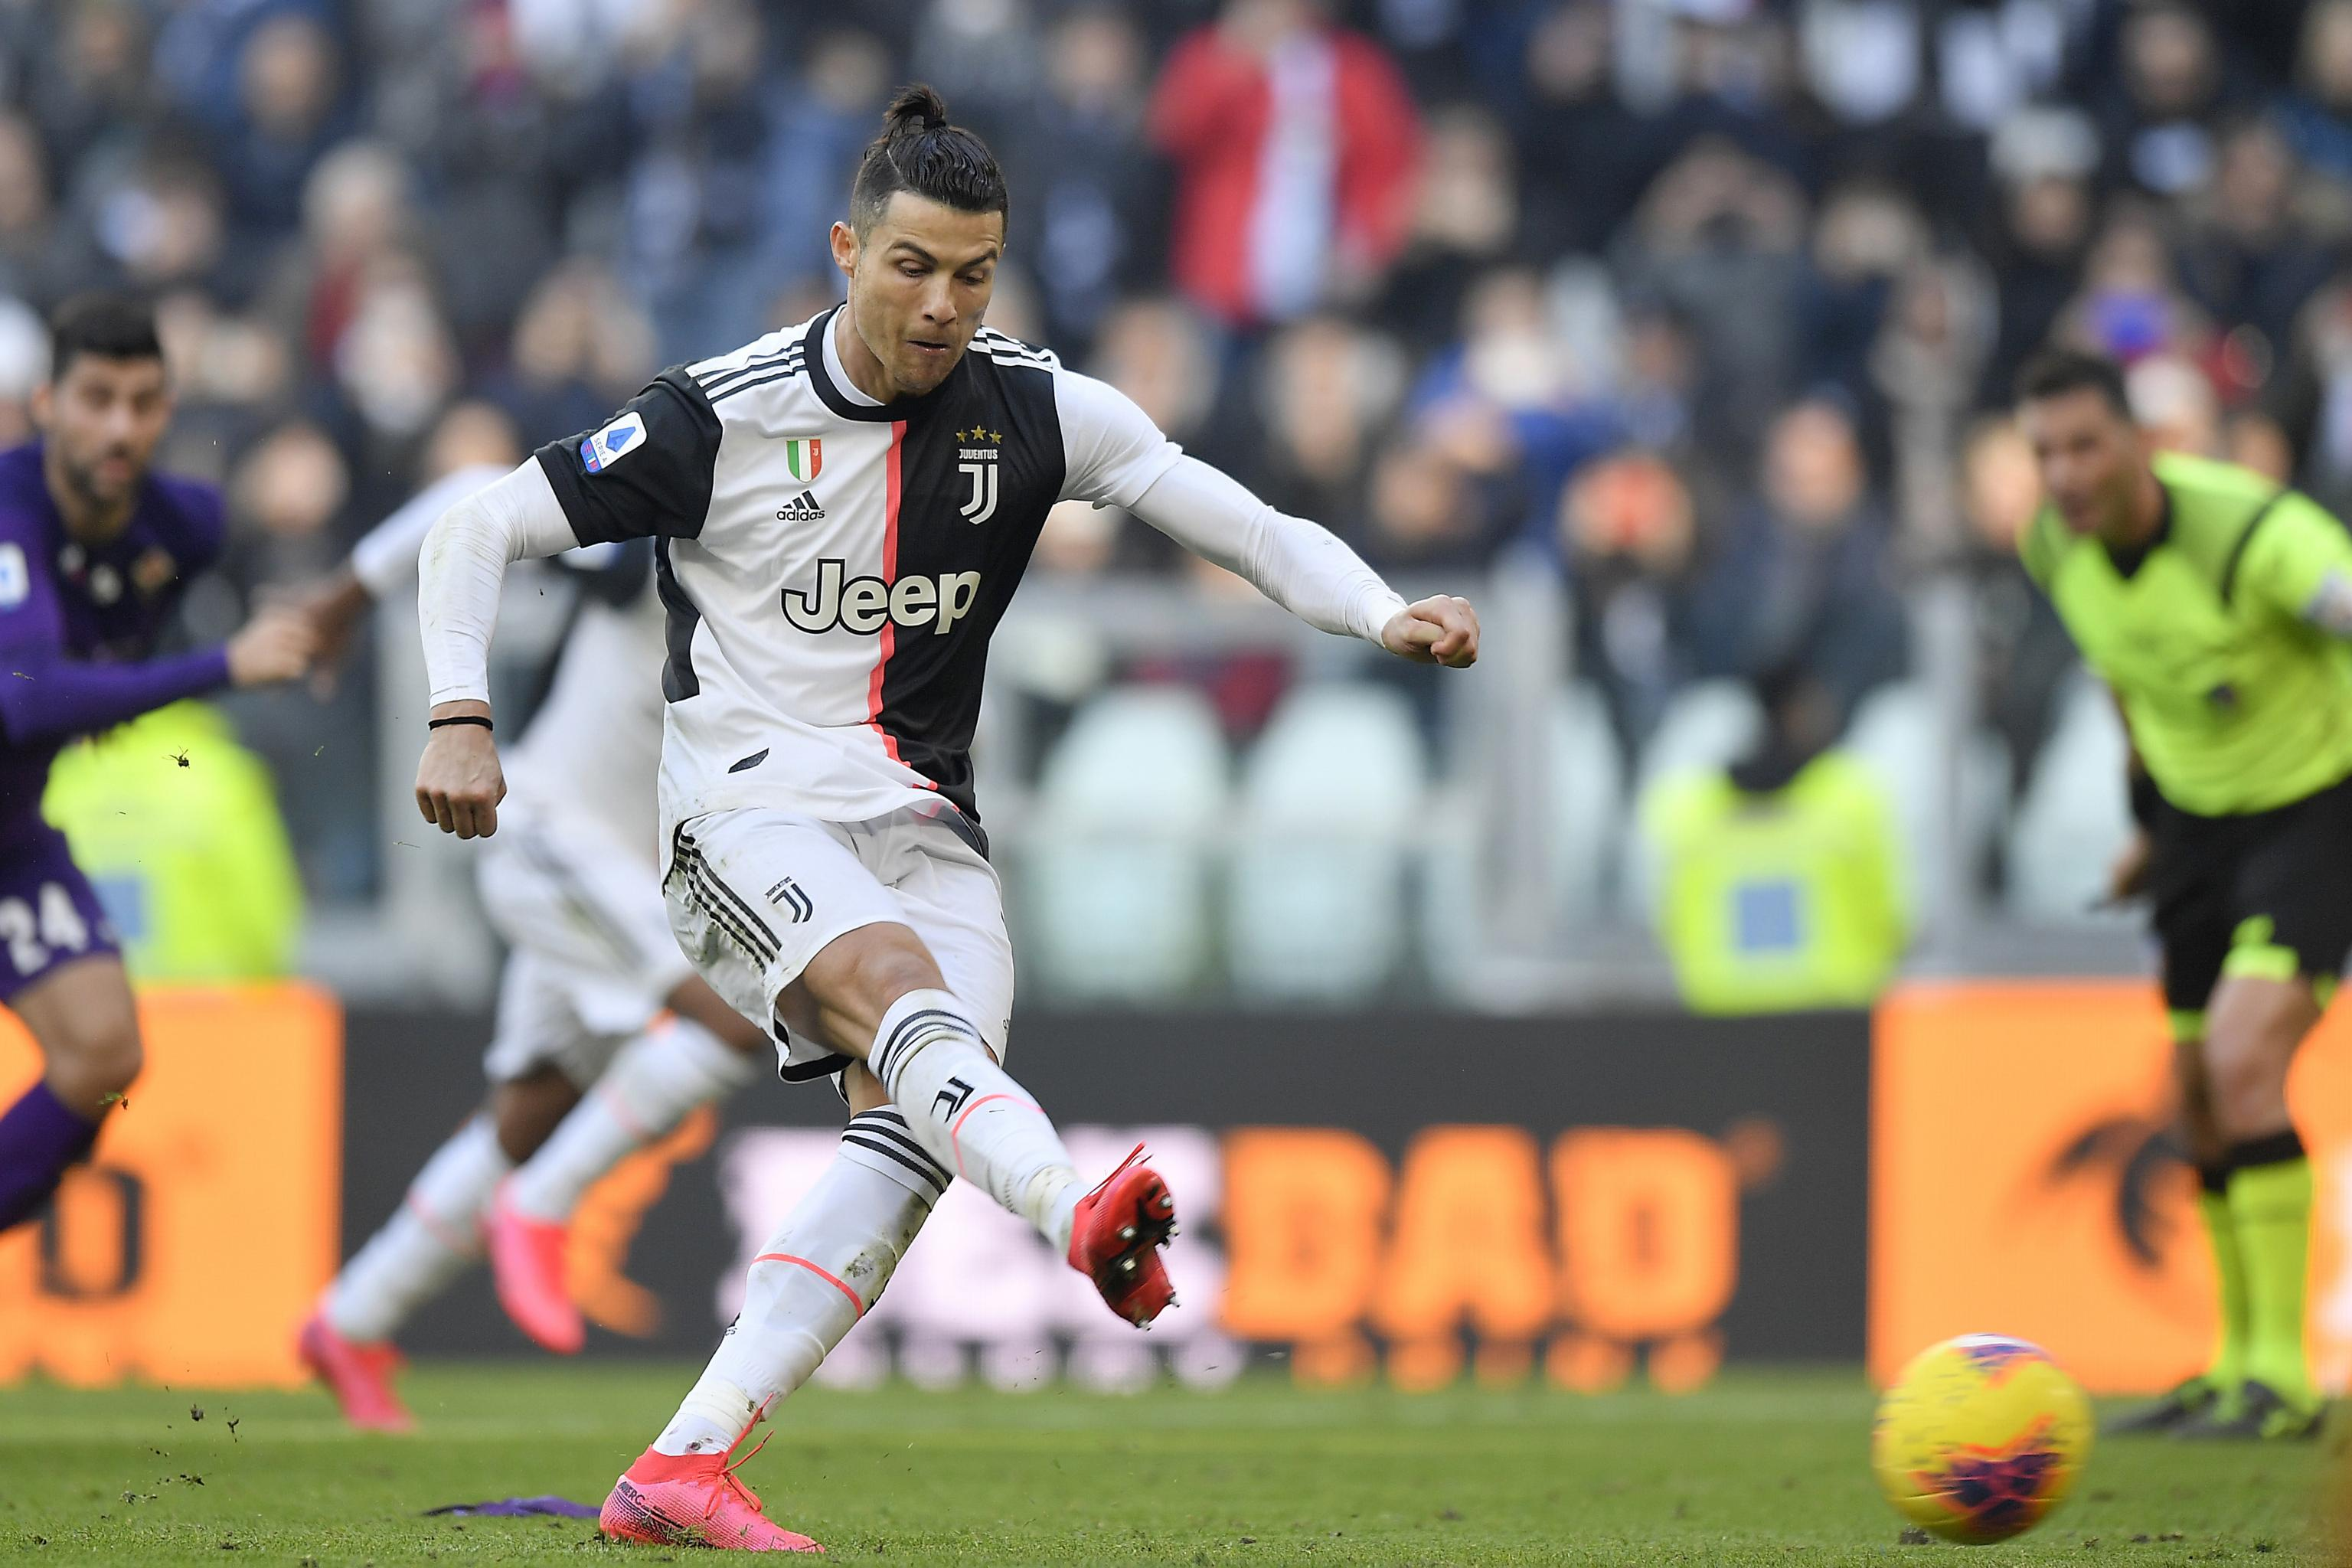 Cristiano Ronaldo S 2 Penalties See Juventus Beat Fiorentina In Serie A Bleacher Report Latest News Videos And Highlights